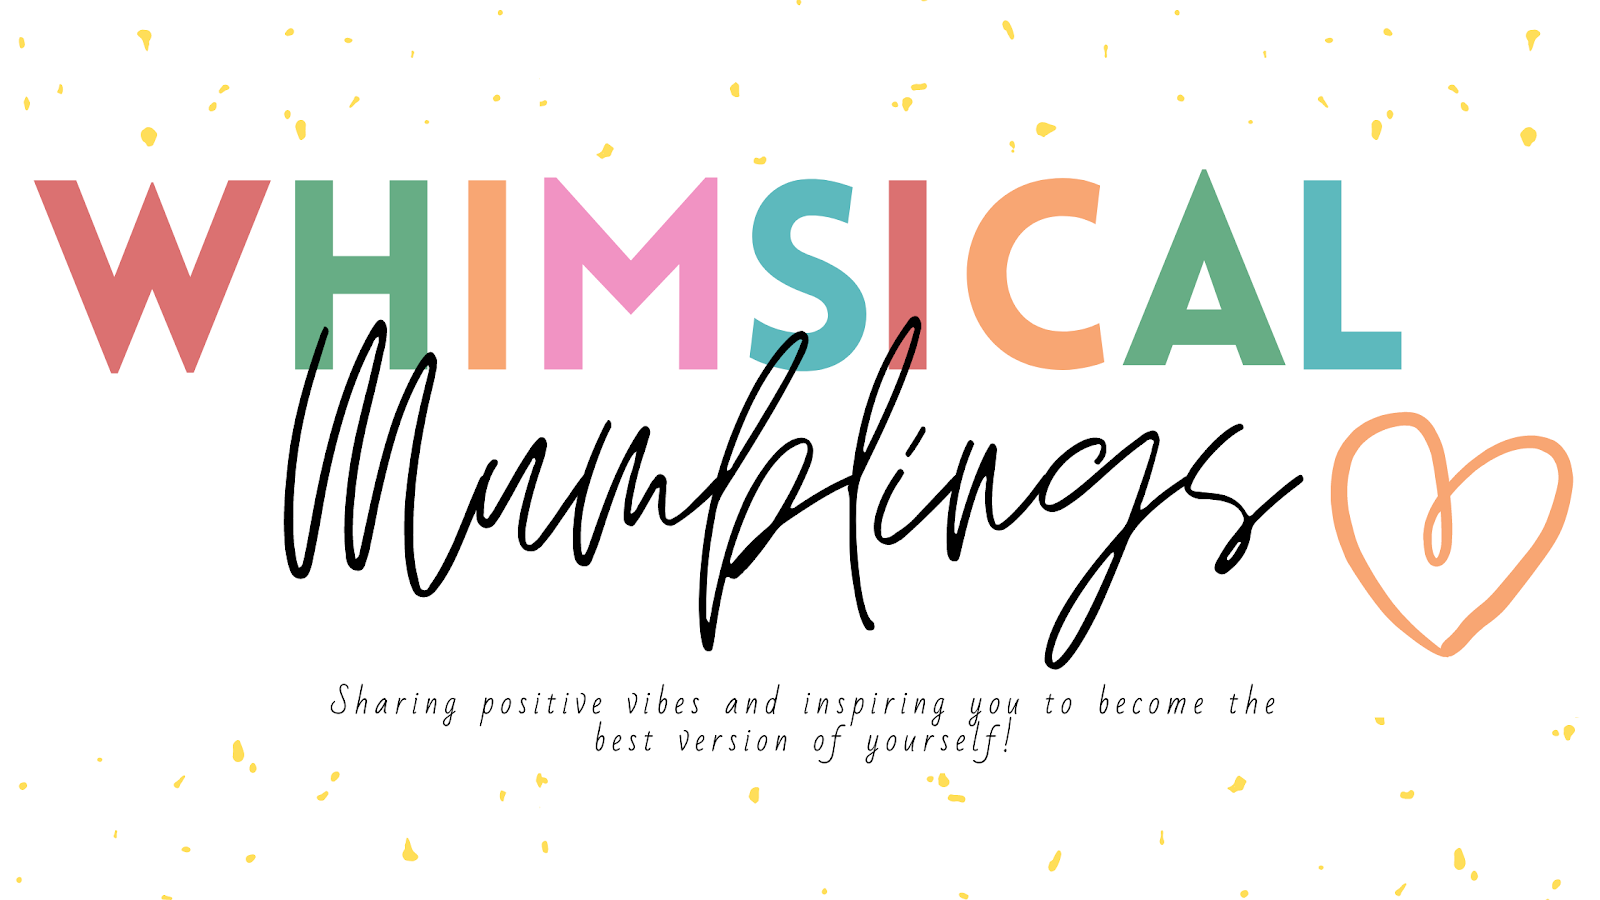 Whimsical Mumblings